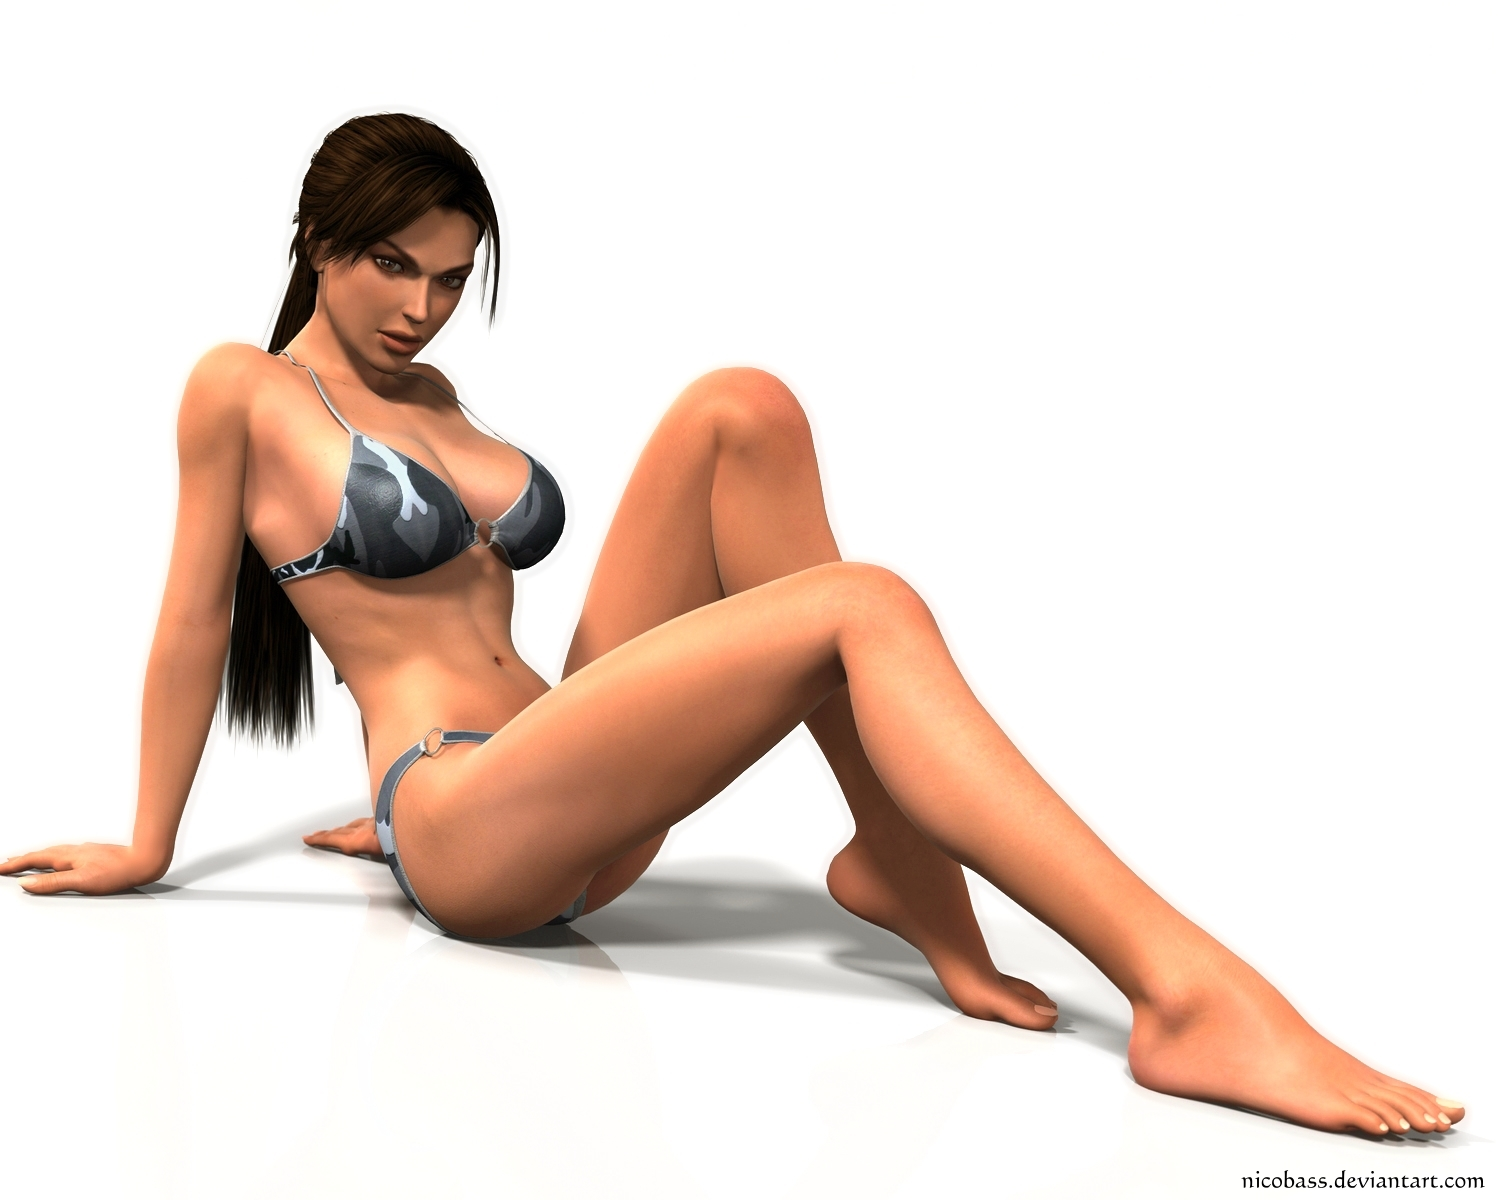 Sextoon 3d imges naked pics